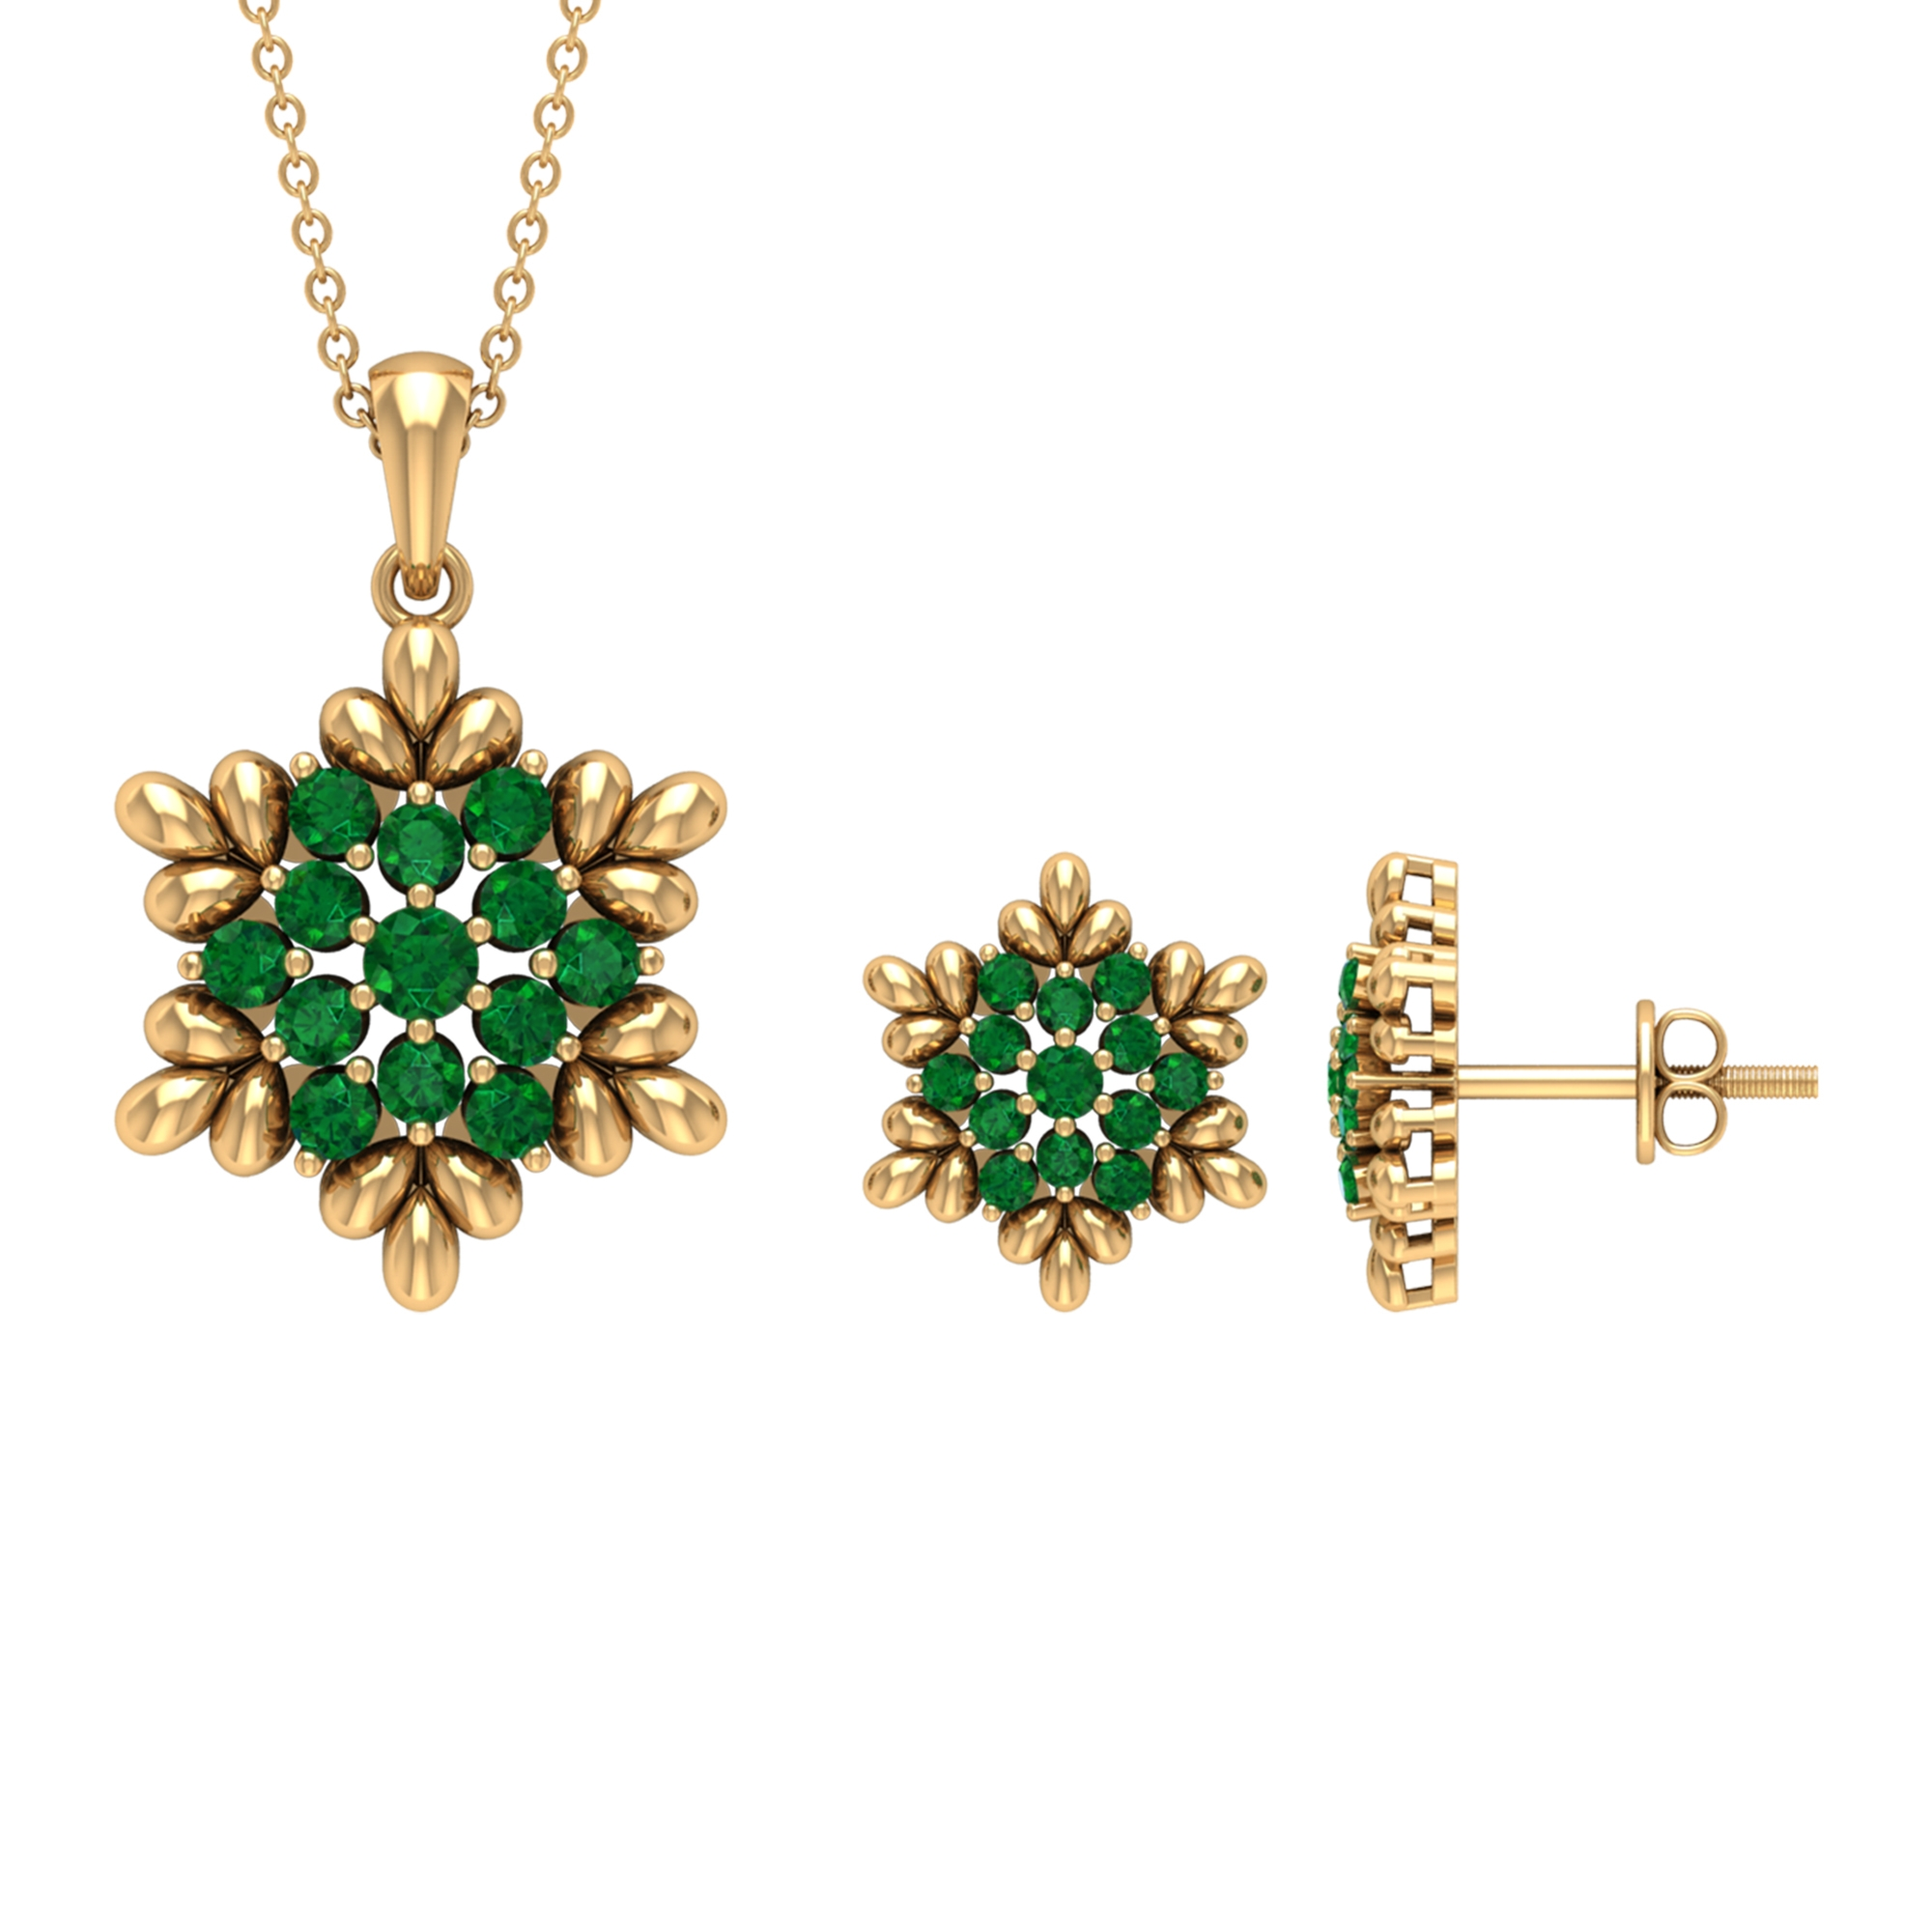 1.25 CT Emerald and Gold Flower Jewelry Set